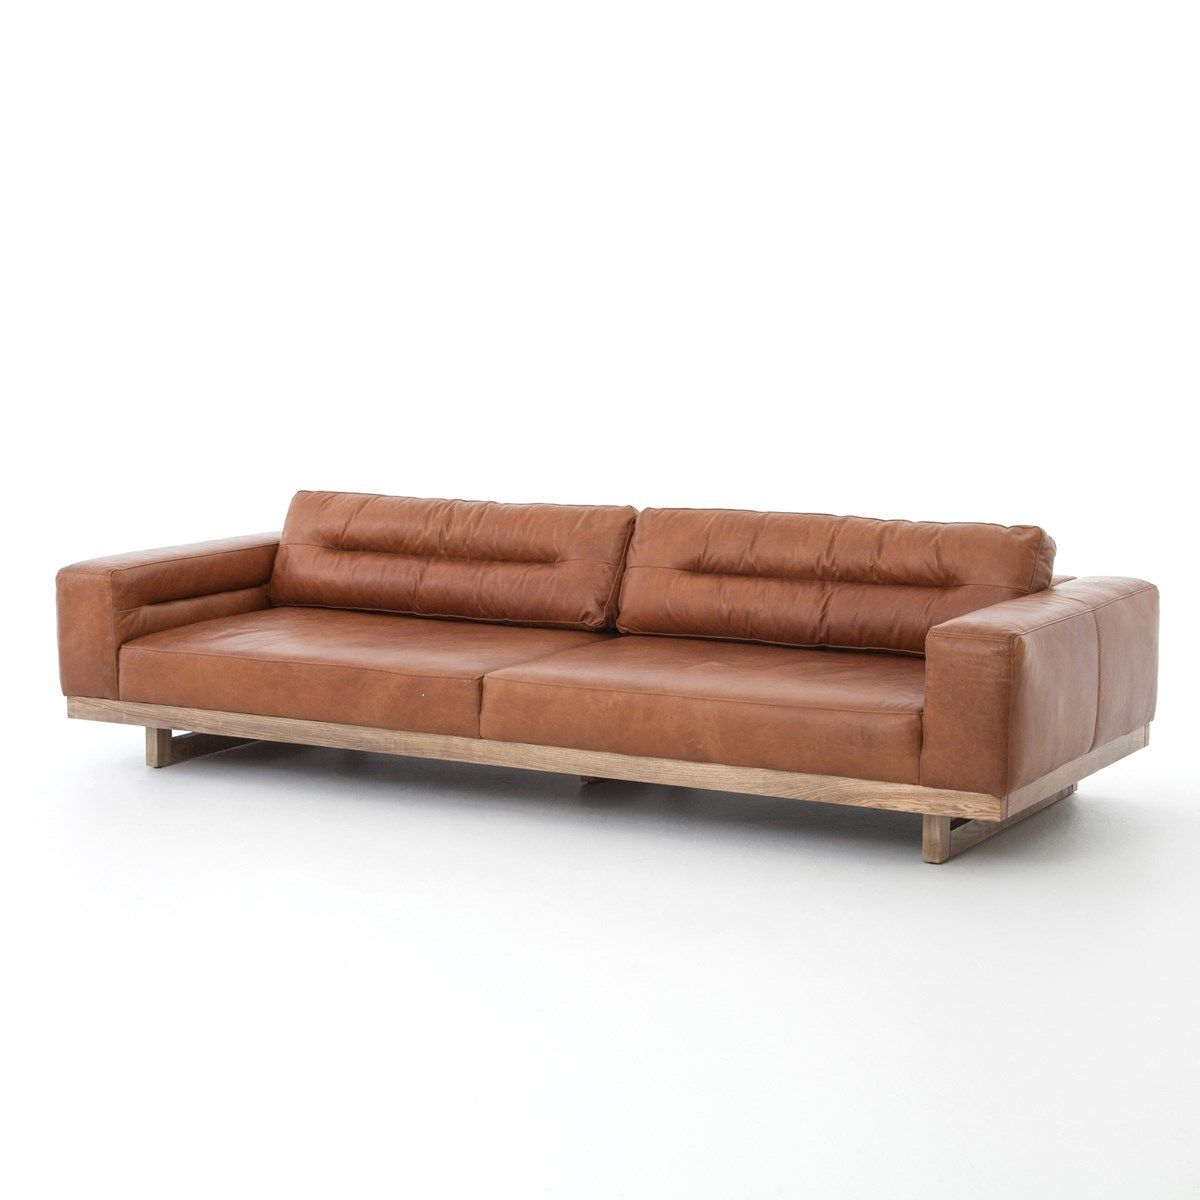 Https Www Zinhome Froster Contemporary Leather